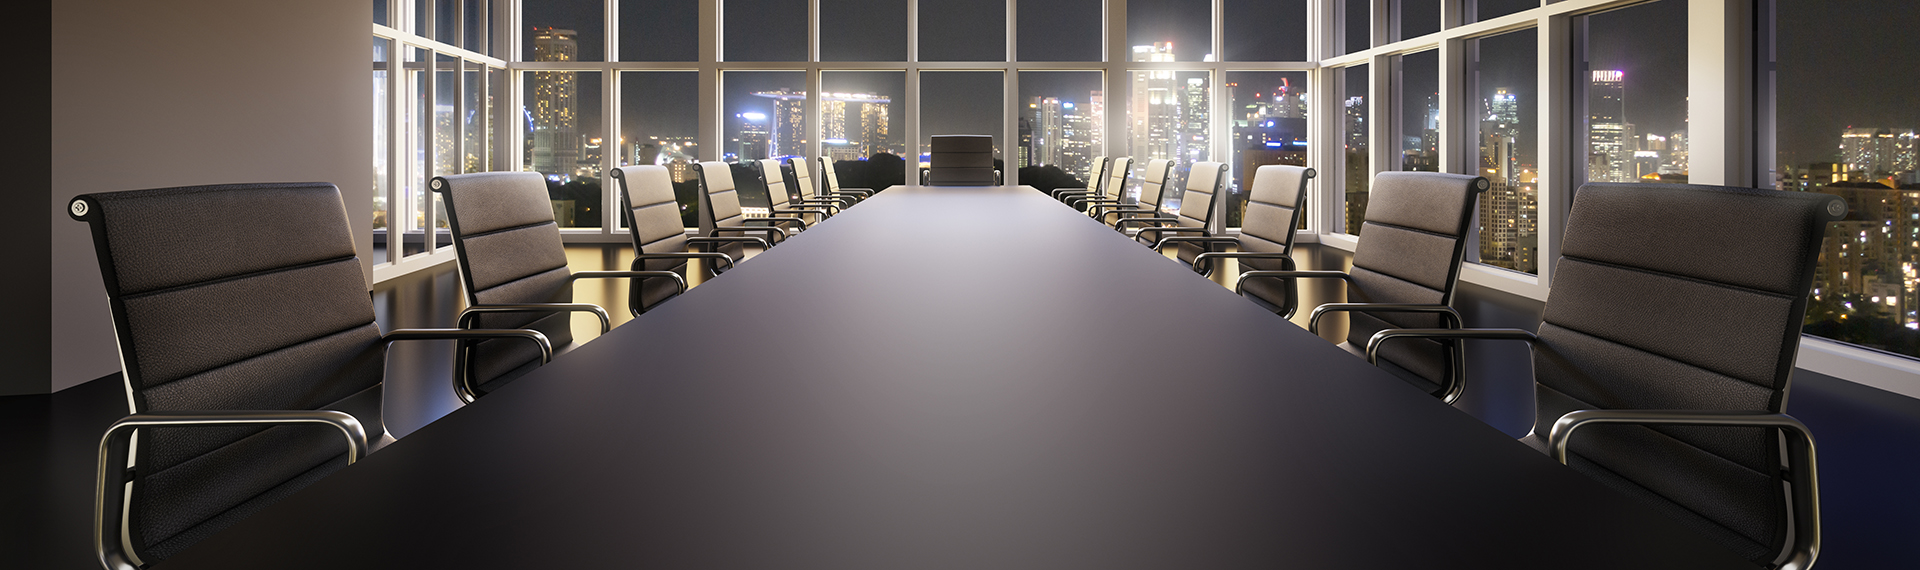 Academy of Medicine Nominating Committee seeks members to run for Council Positions